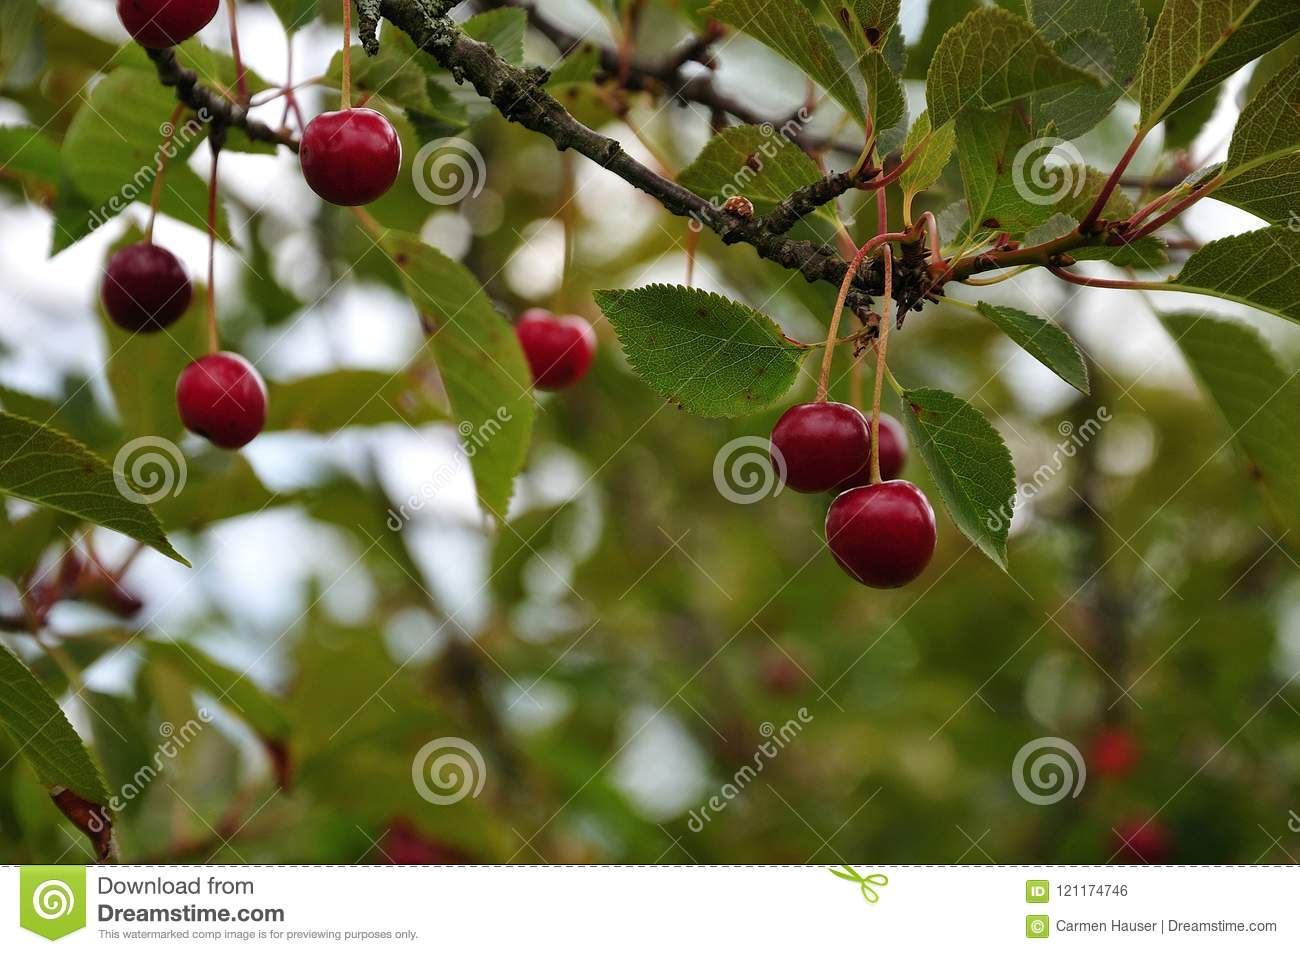 Red tart cherries at tree stock photo  Image of plant - 121174746